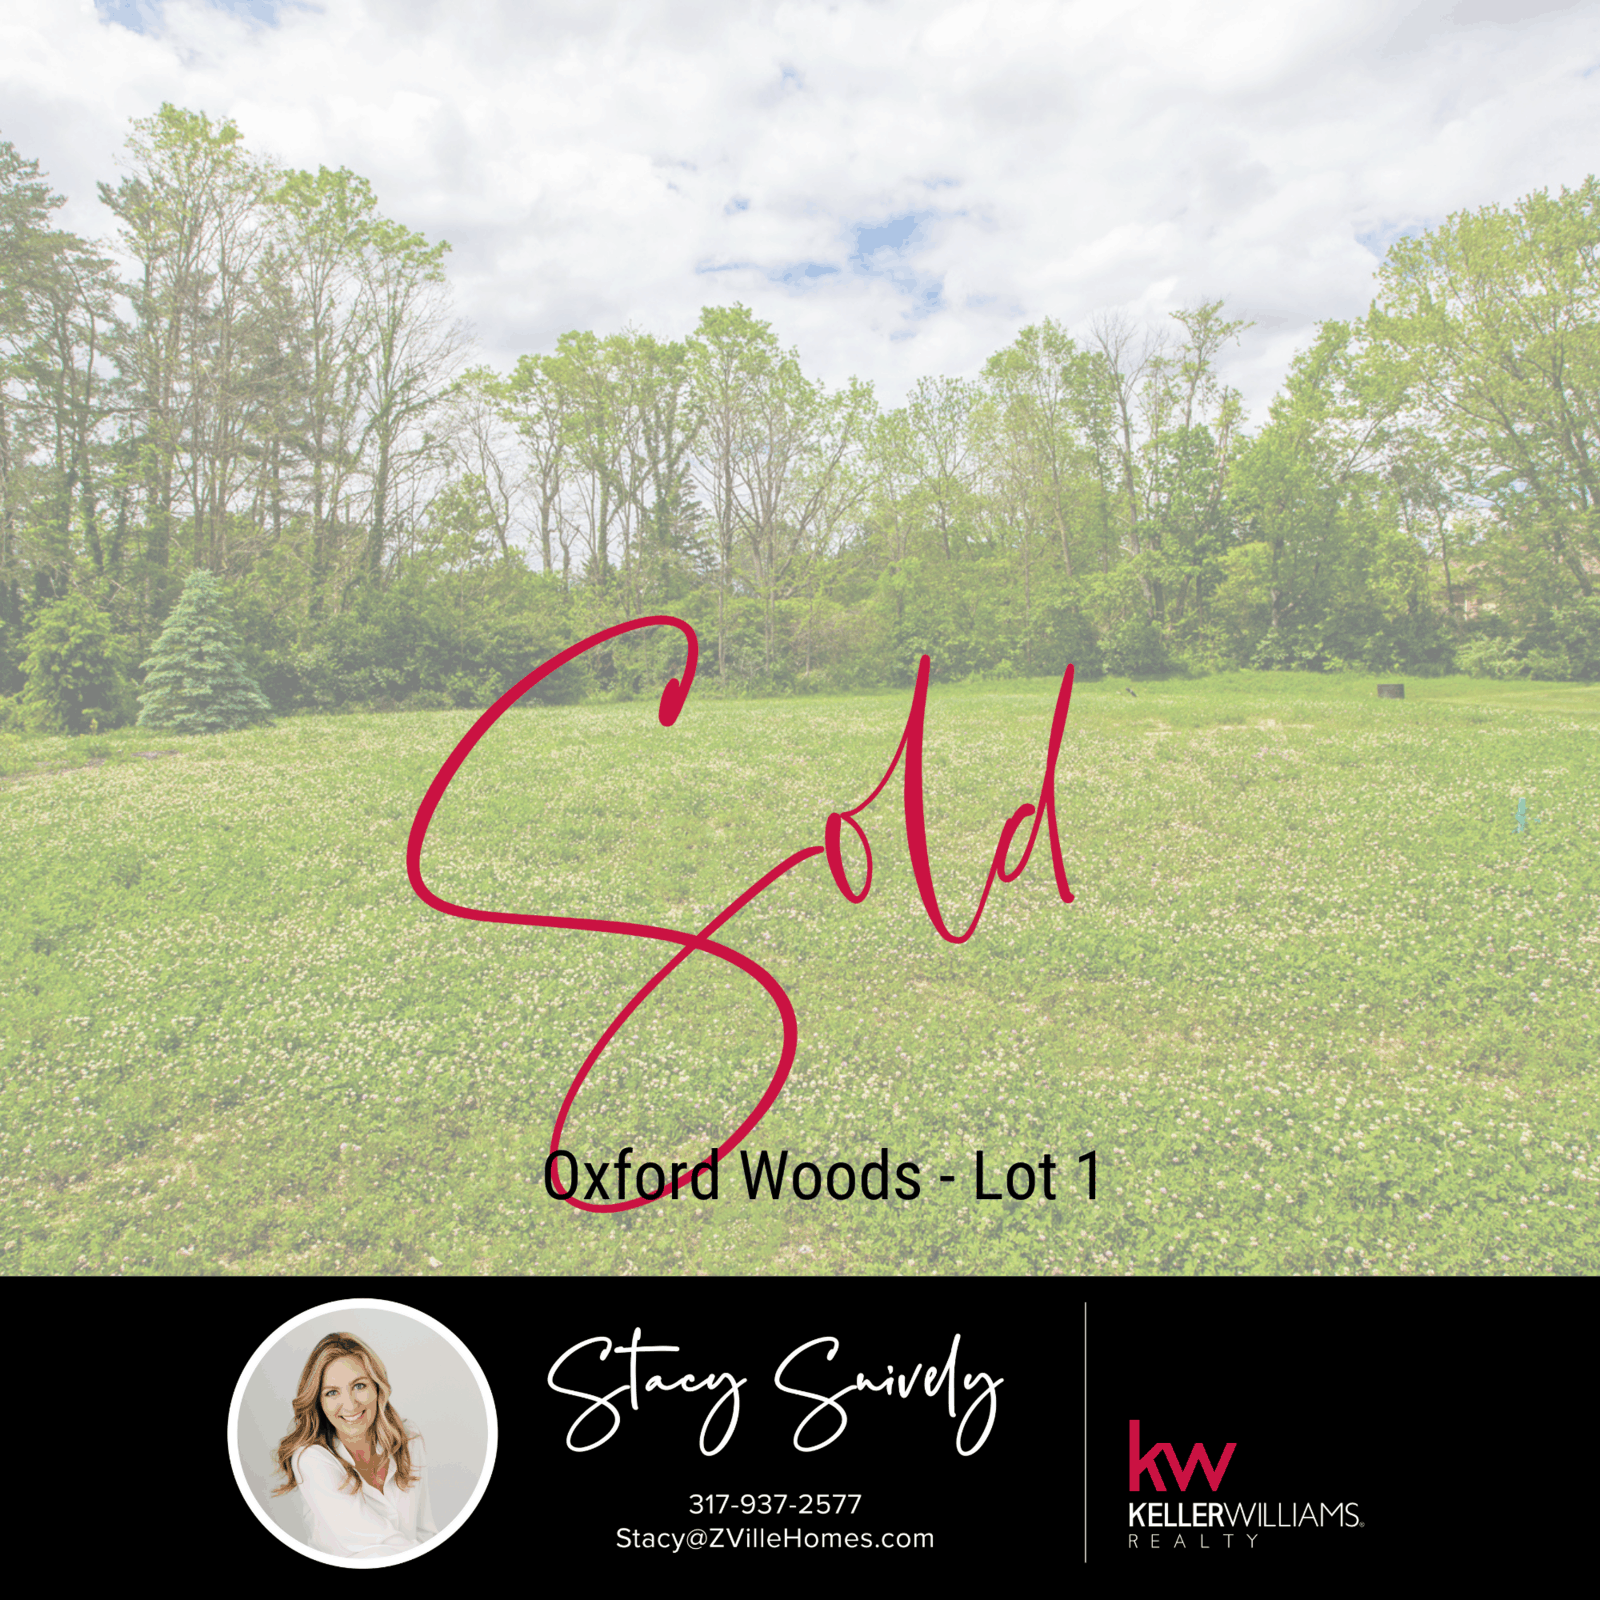 Oxford Woods - Lot 1 - Sold